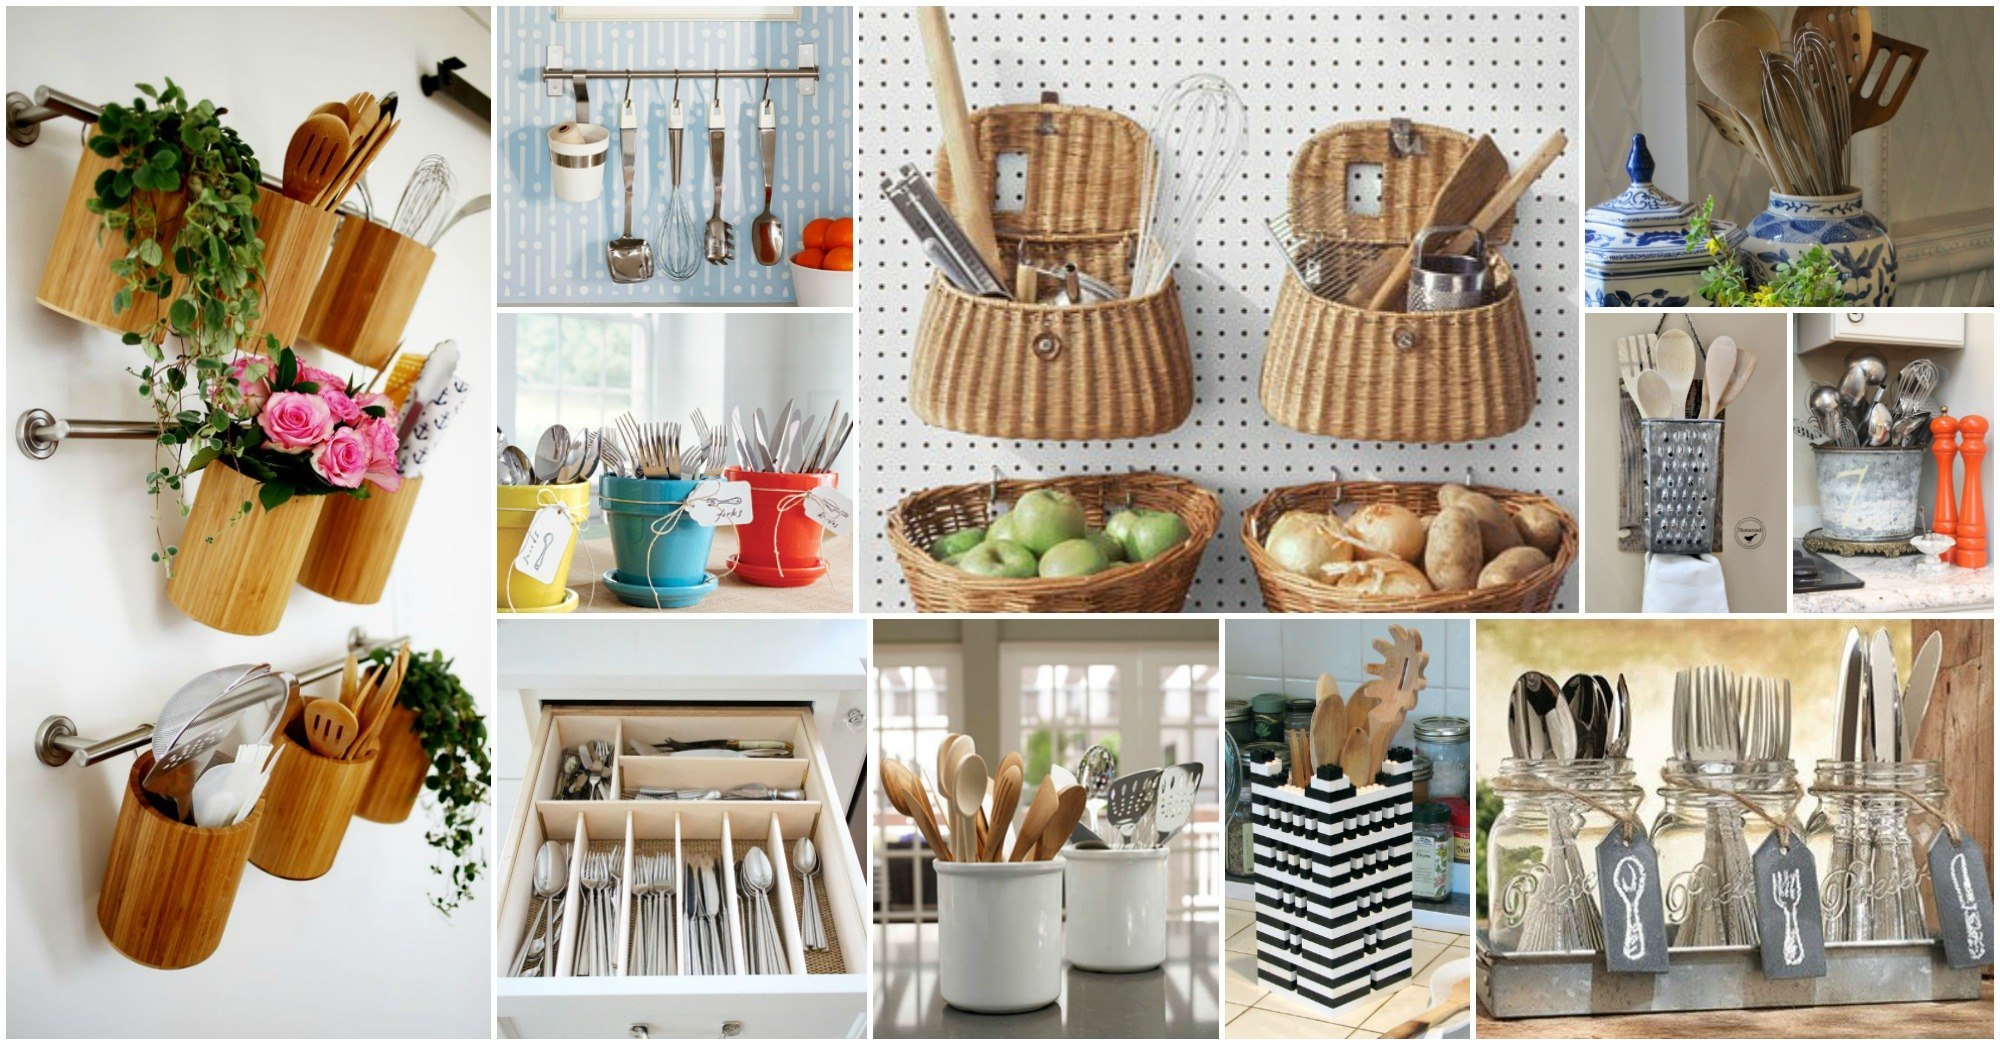 20 Creative Ideas Of How to Organize Your Kitchen Utensils on creative kitchen designs 10, creative kitchen countertop ideas, creative kitchen design ideas,